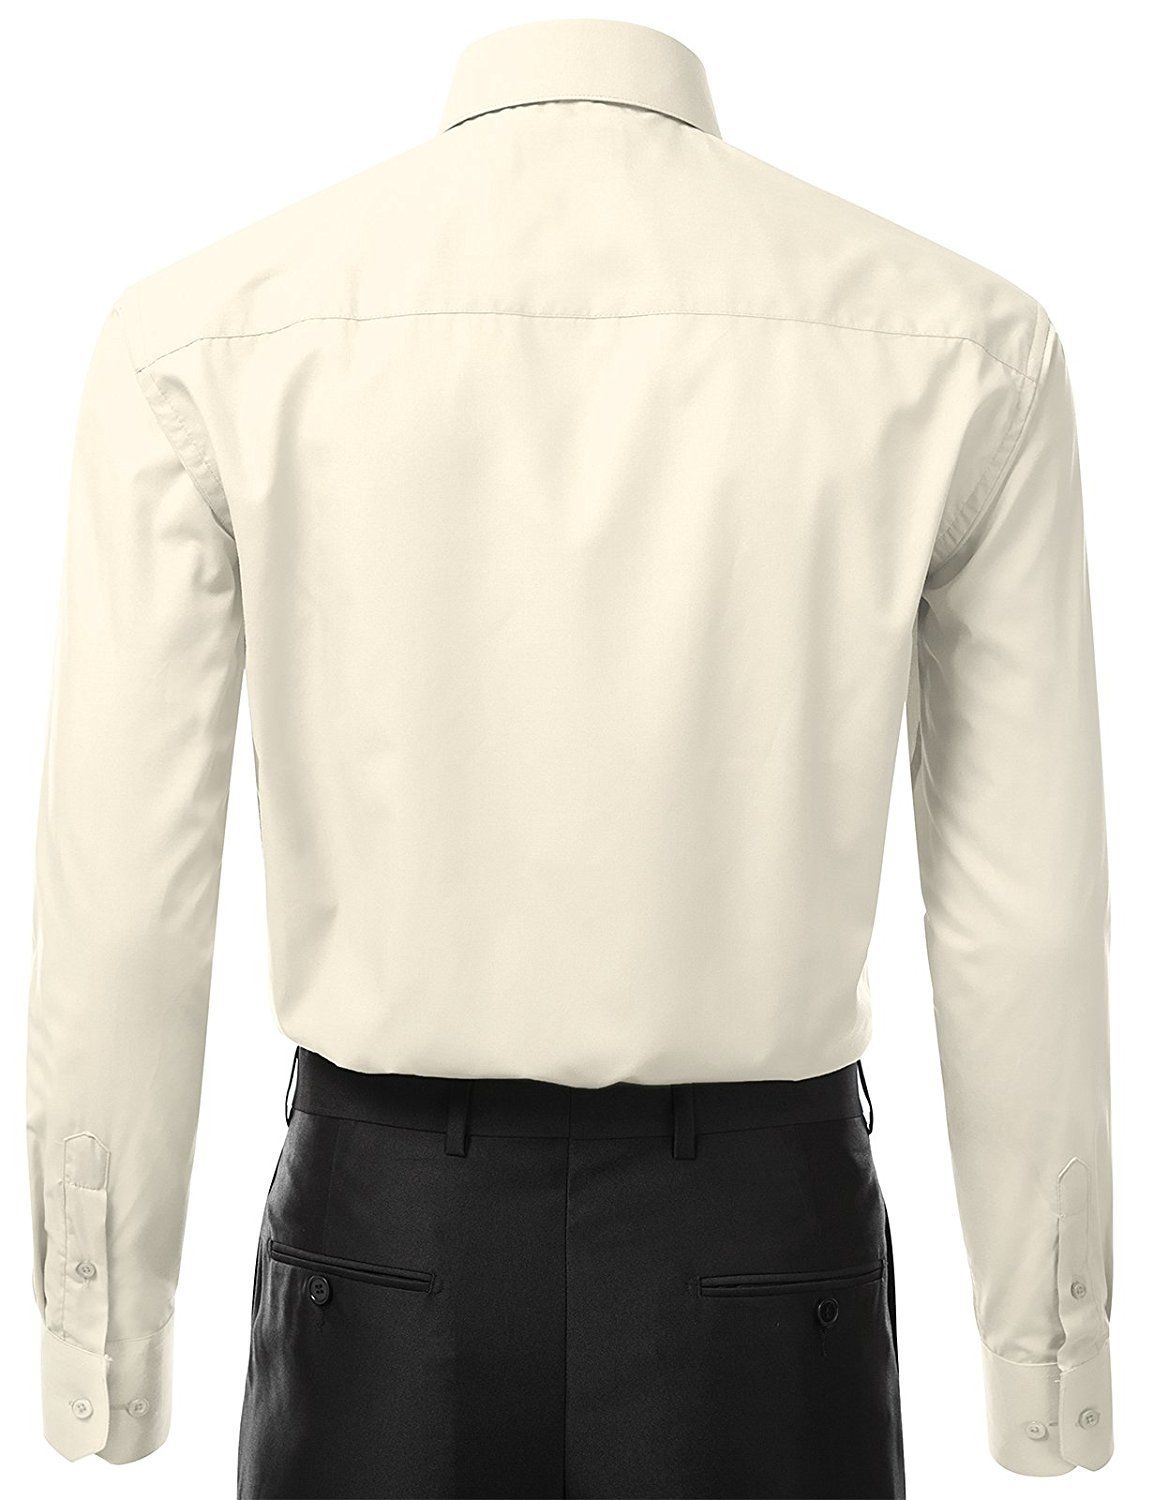 Berlioni-Italy-Men-039-s-Premium-Classic-French-Convertible-Cuff-Solid-Dress-Shirt thumbnail 41